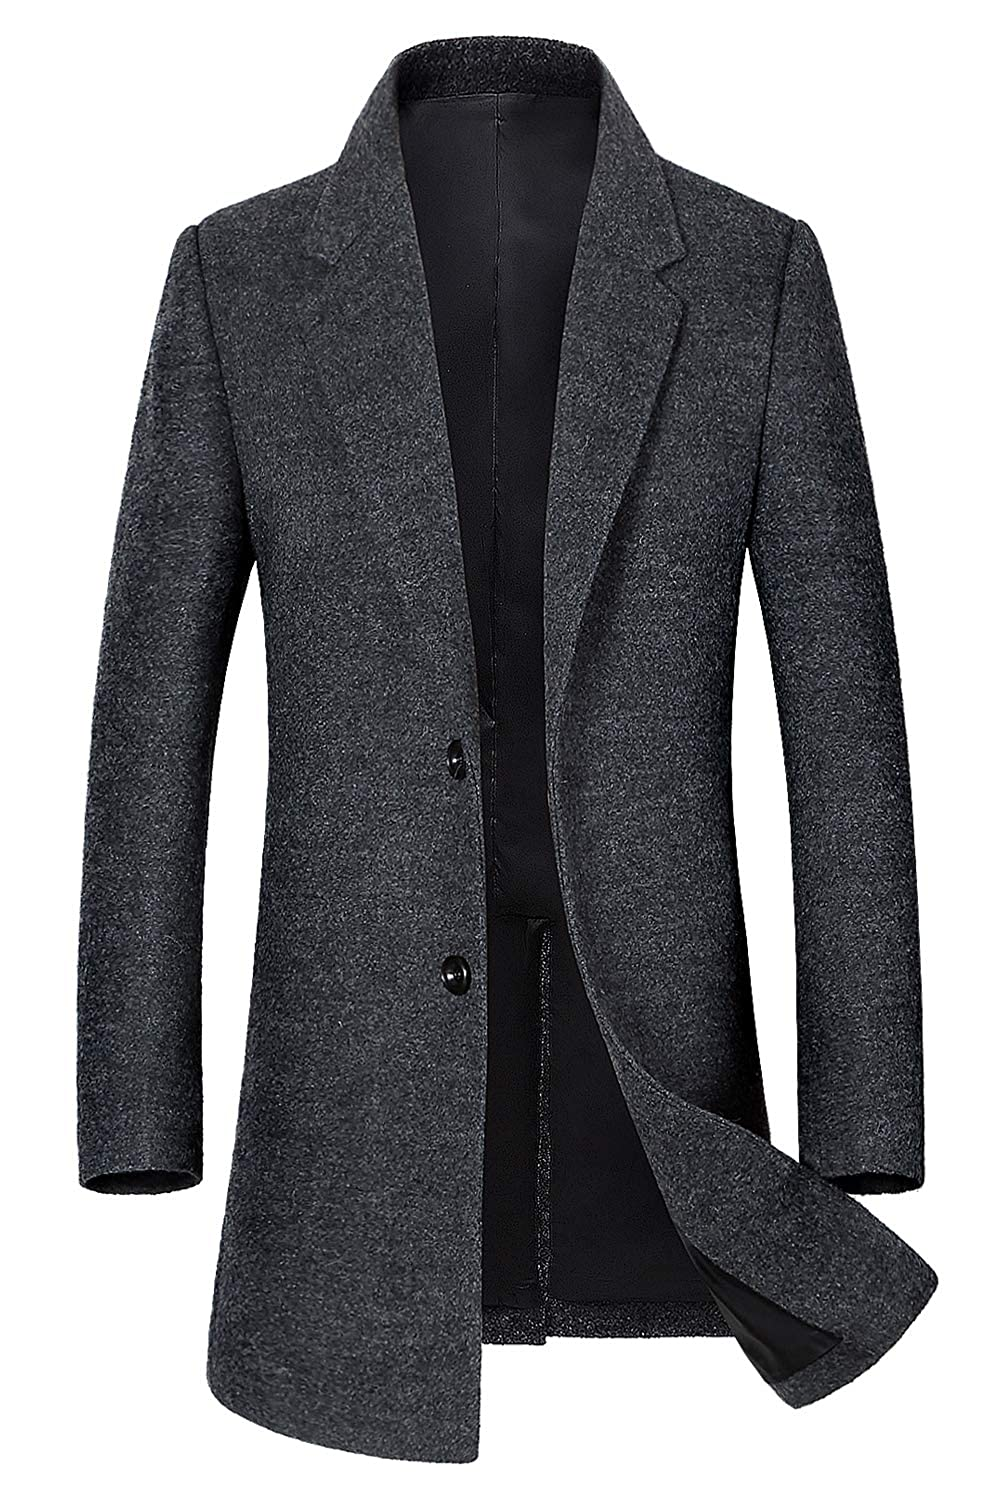 Mens Classic Single Breasted Wool Walker Coat Stylish Jacket 101219